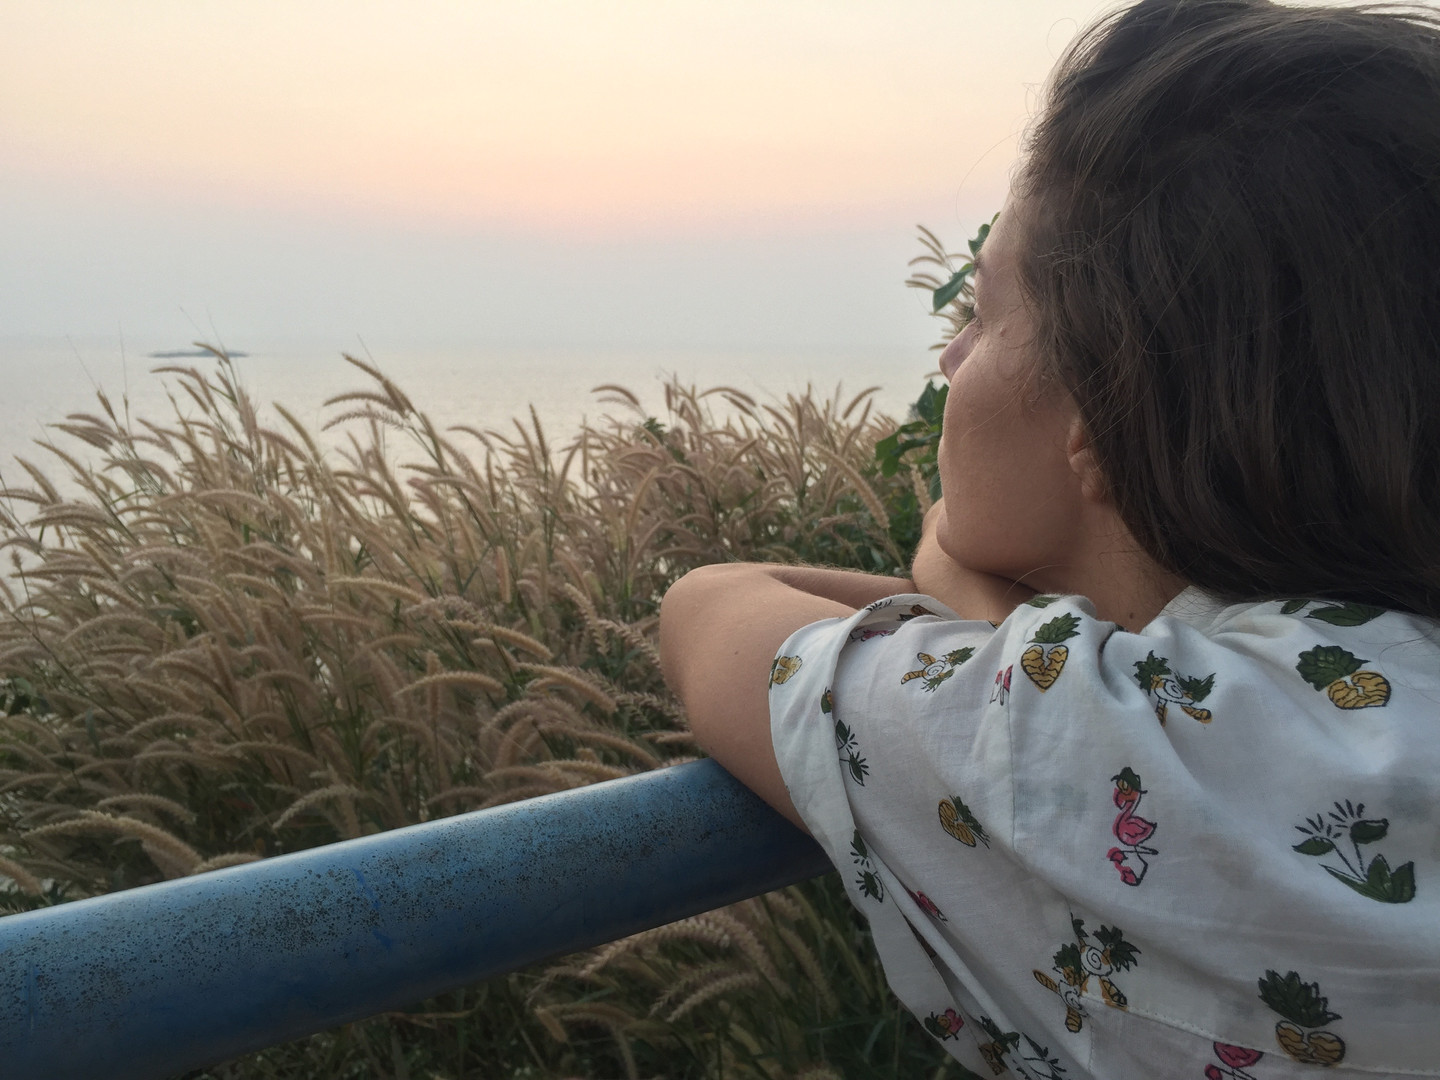 gazing at the sunset in southern india with a tropicool medley block print